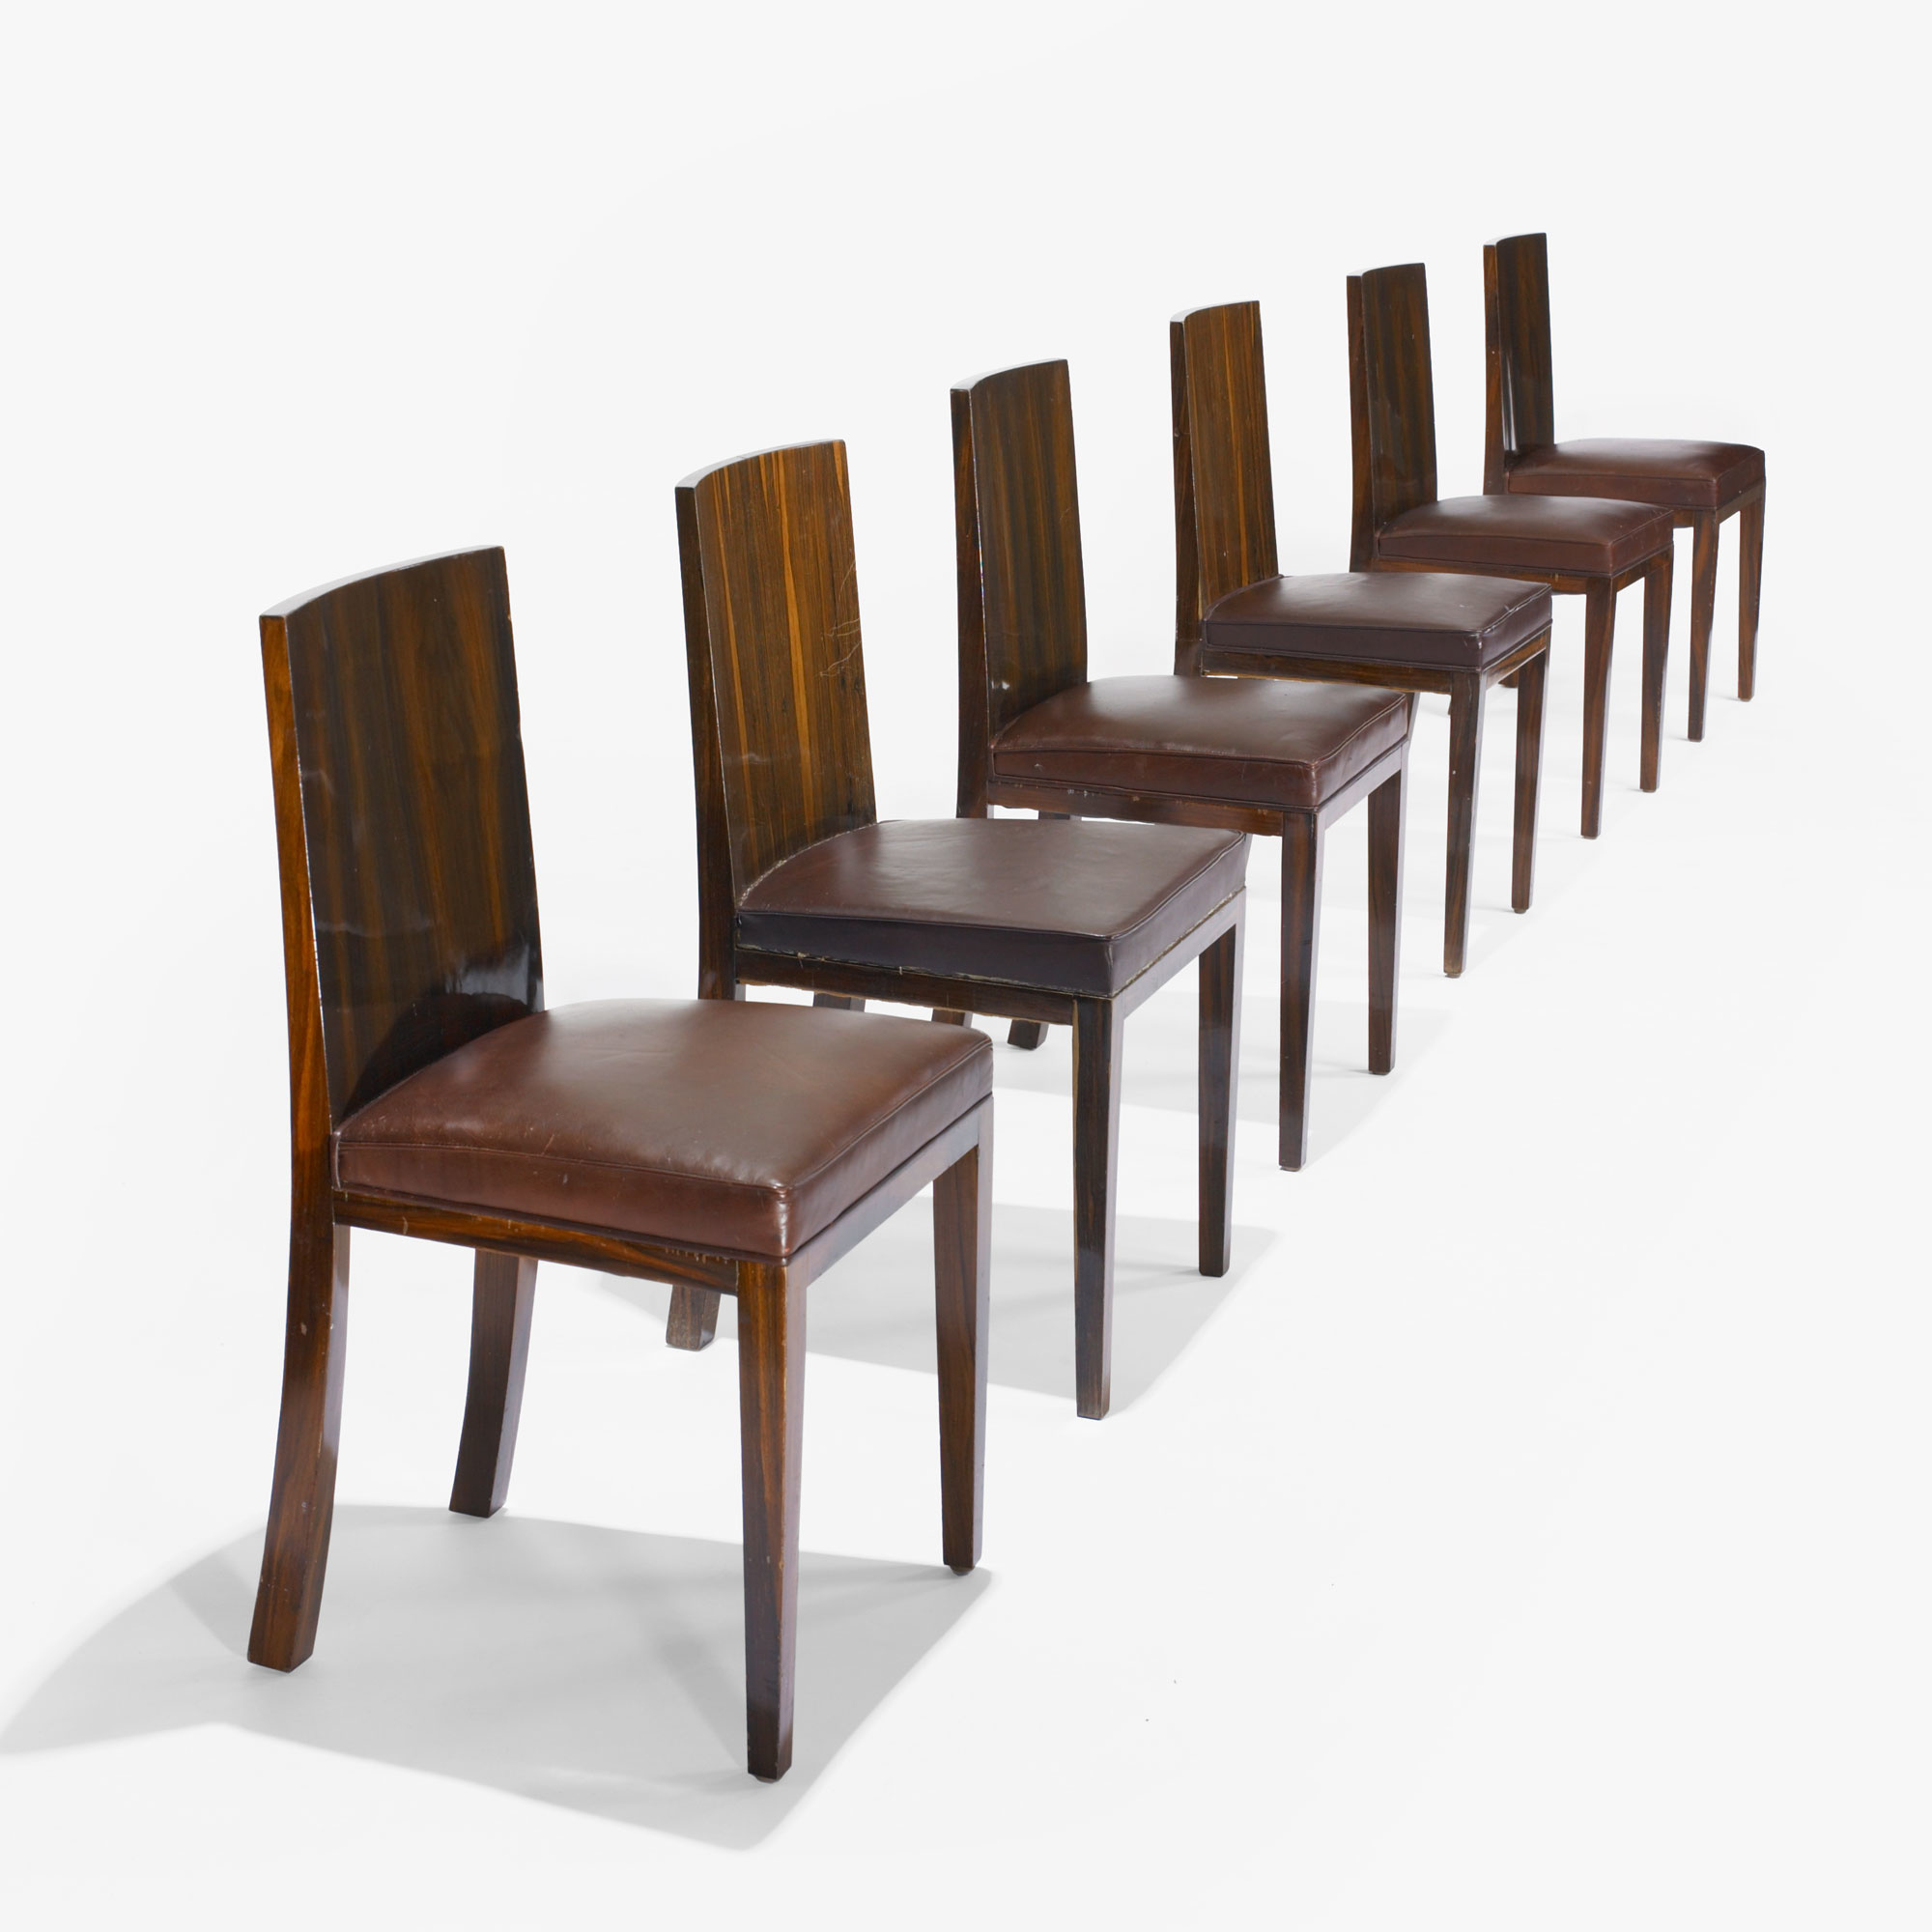 Living Room Bedroom Combo Ideas, 532 Philippe Starck Set Of Six Dining Chairs For The Royalton Hotel Modern Design 6 October 2009 Auctions Wright Auctions Of Art And Design